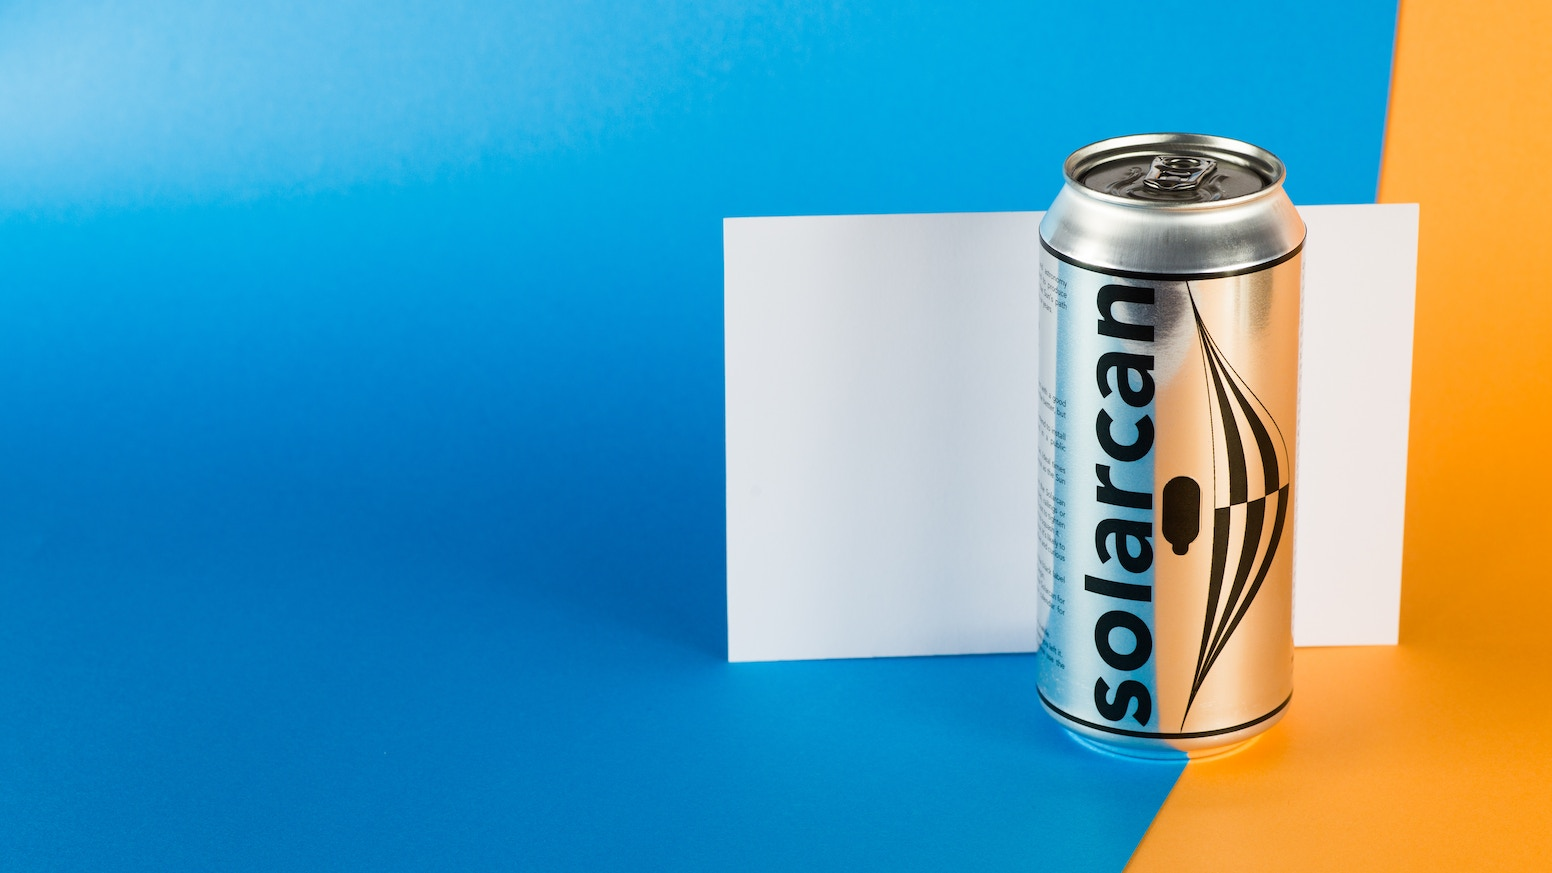 Solarcan is a unique camera designed to produce extreme time exposures that capture the Sun's path through the sky over many months